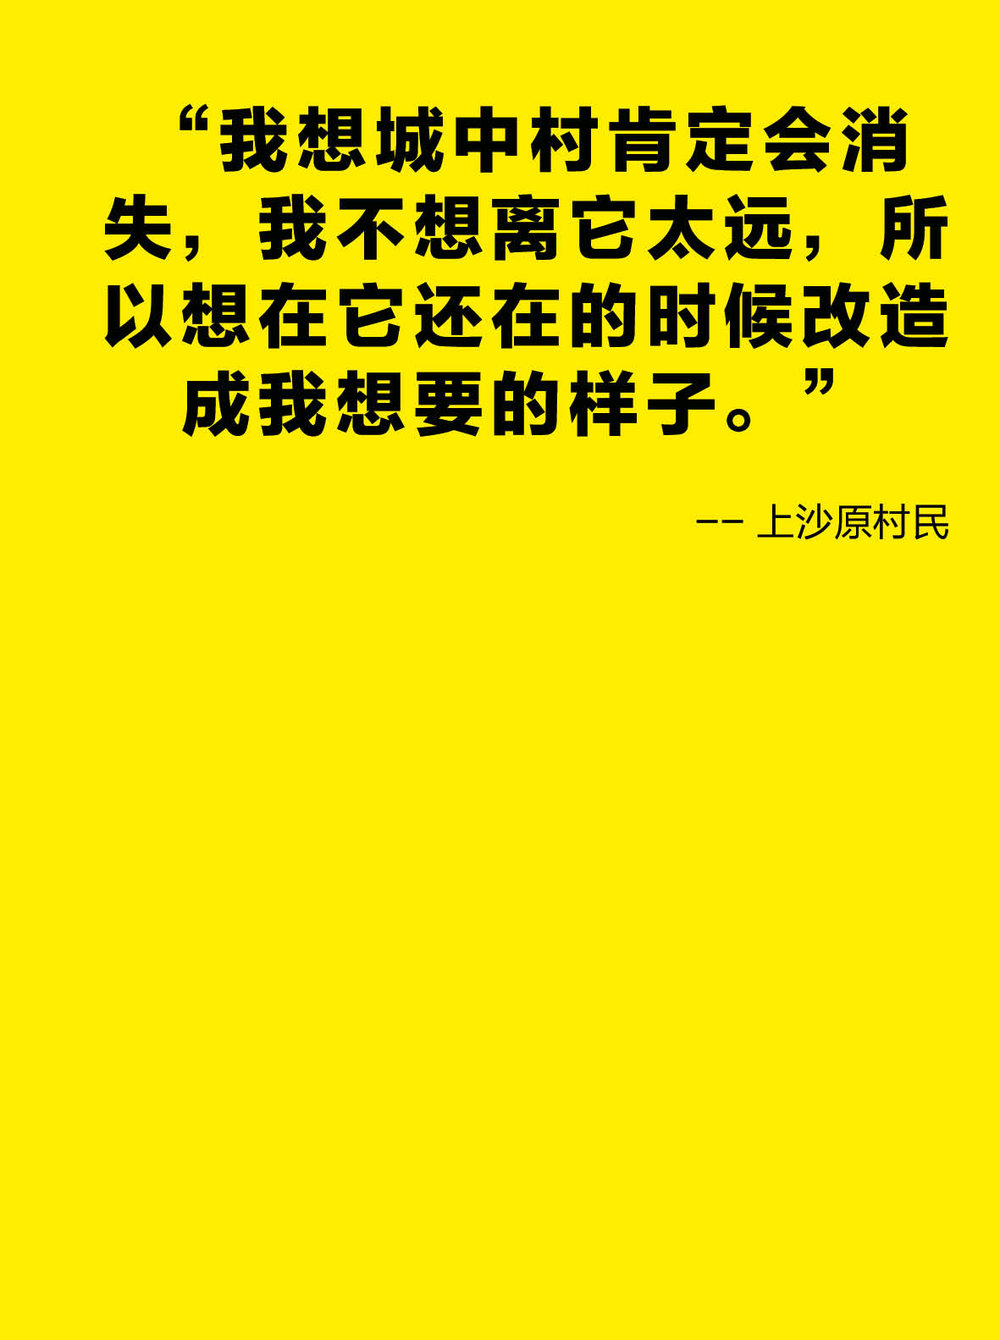 20180106_Shangsha Quotes test038.jpg